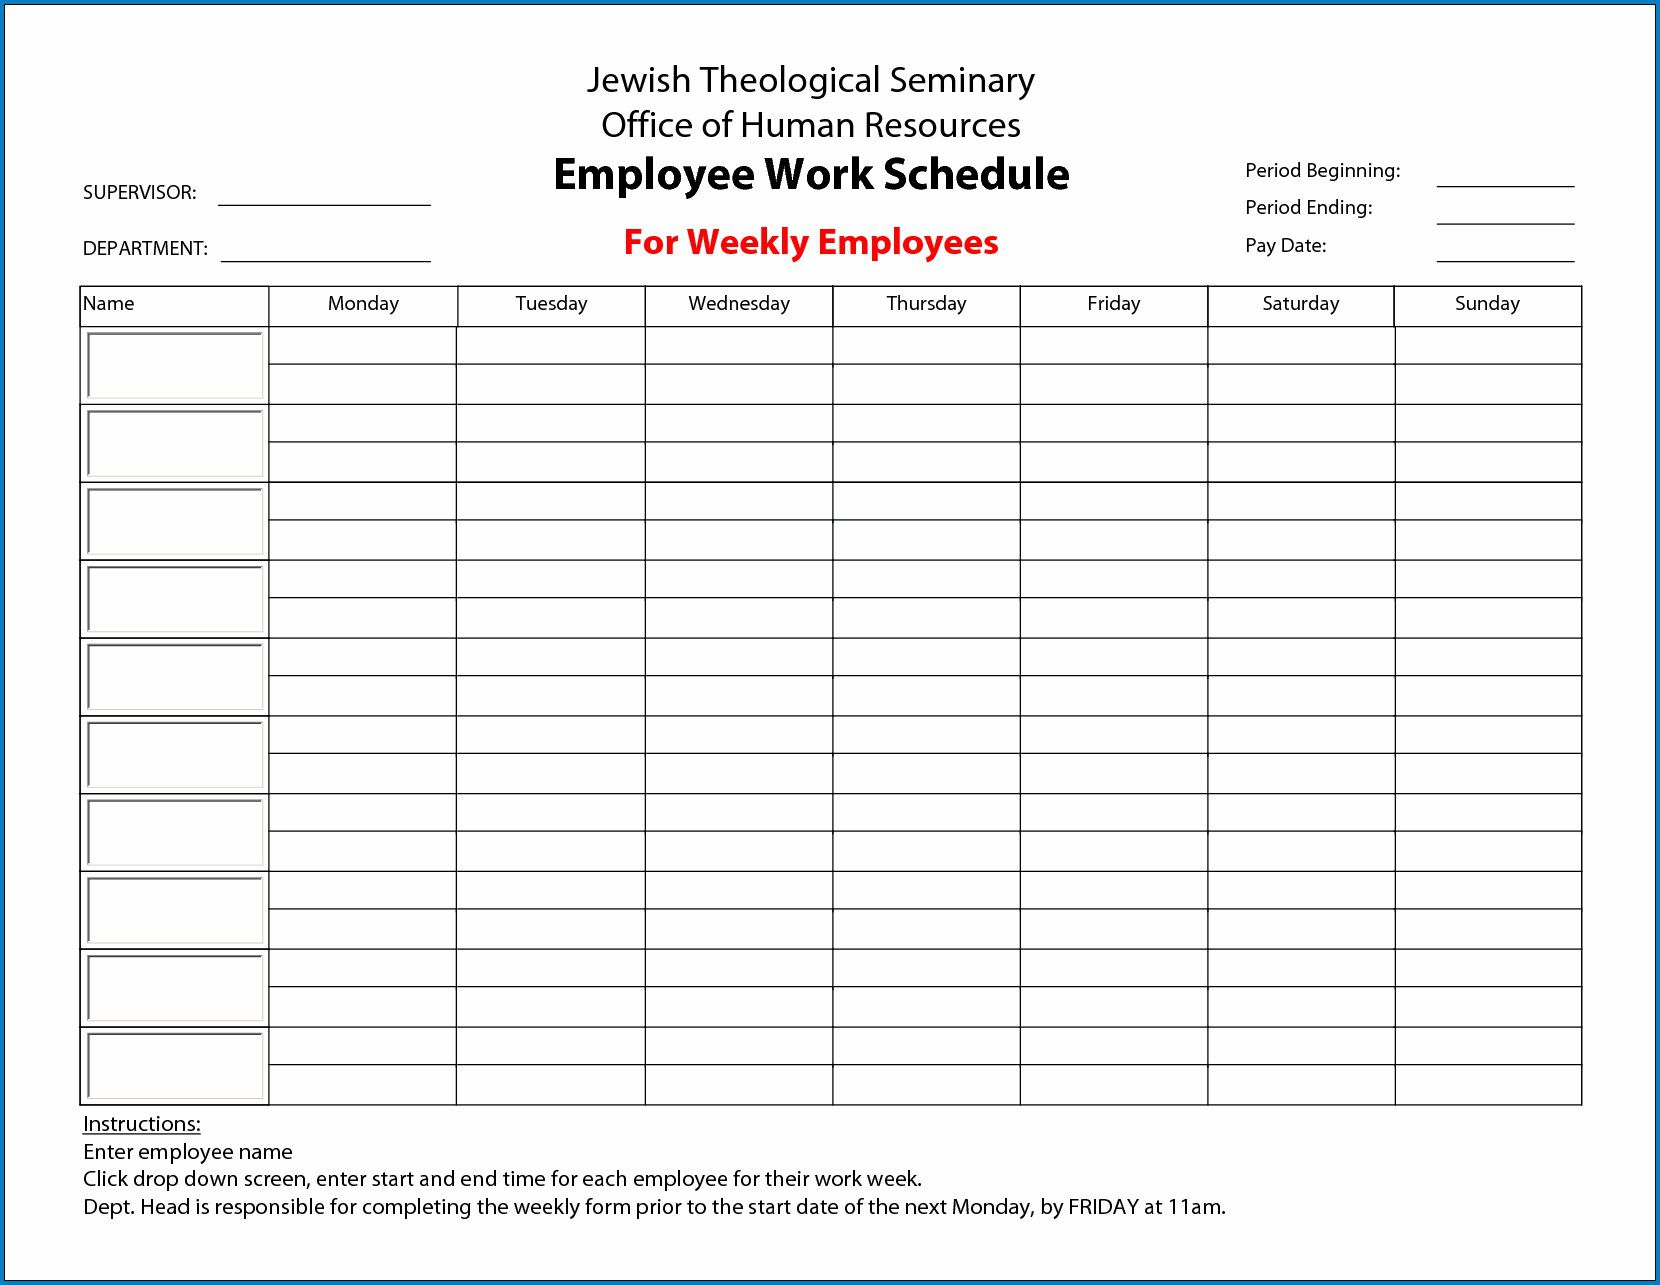 009 Dreaded Free Staff Scheduling Template High Def  Templates Excel Holiday Planner Printable Weekly Employee Work ScheduleFull